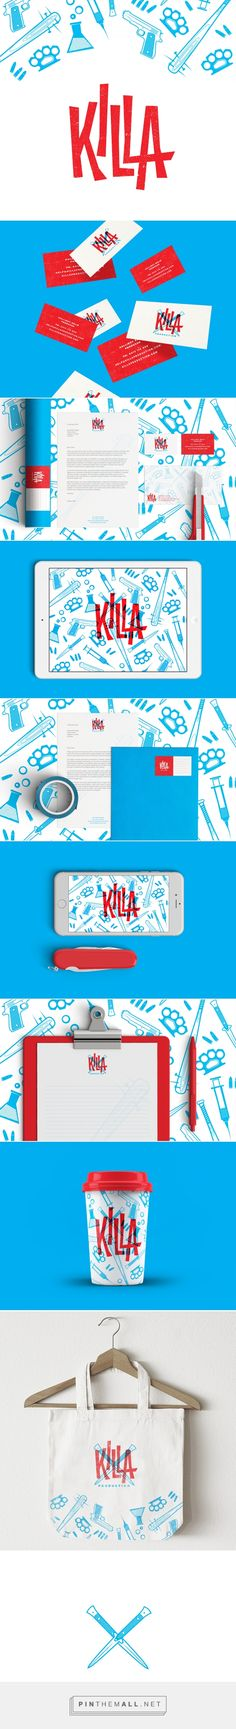 Killa Production on Behance - - - - - - - - - - - - - - - - - - - -... - a grouped images picture - Pin Them All